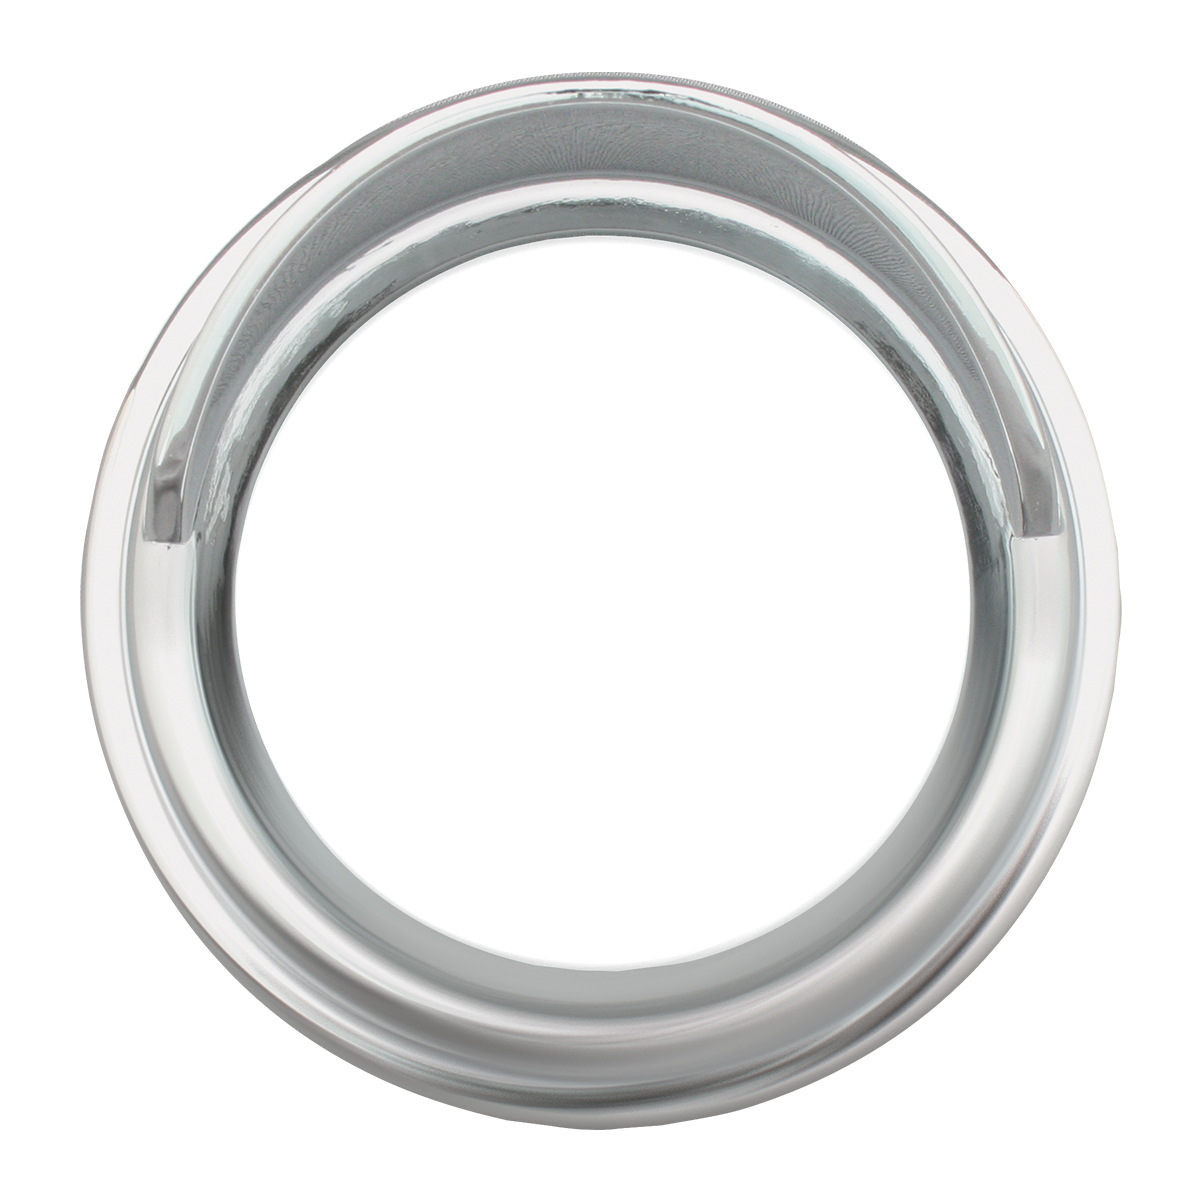 Chrome Plastic Gauge Cover w/ Visor for FL & Pete